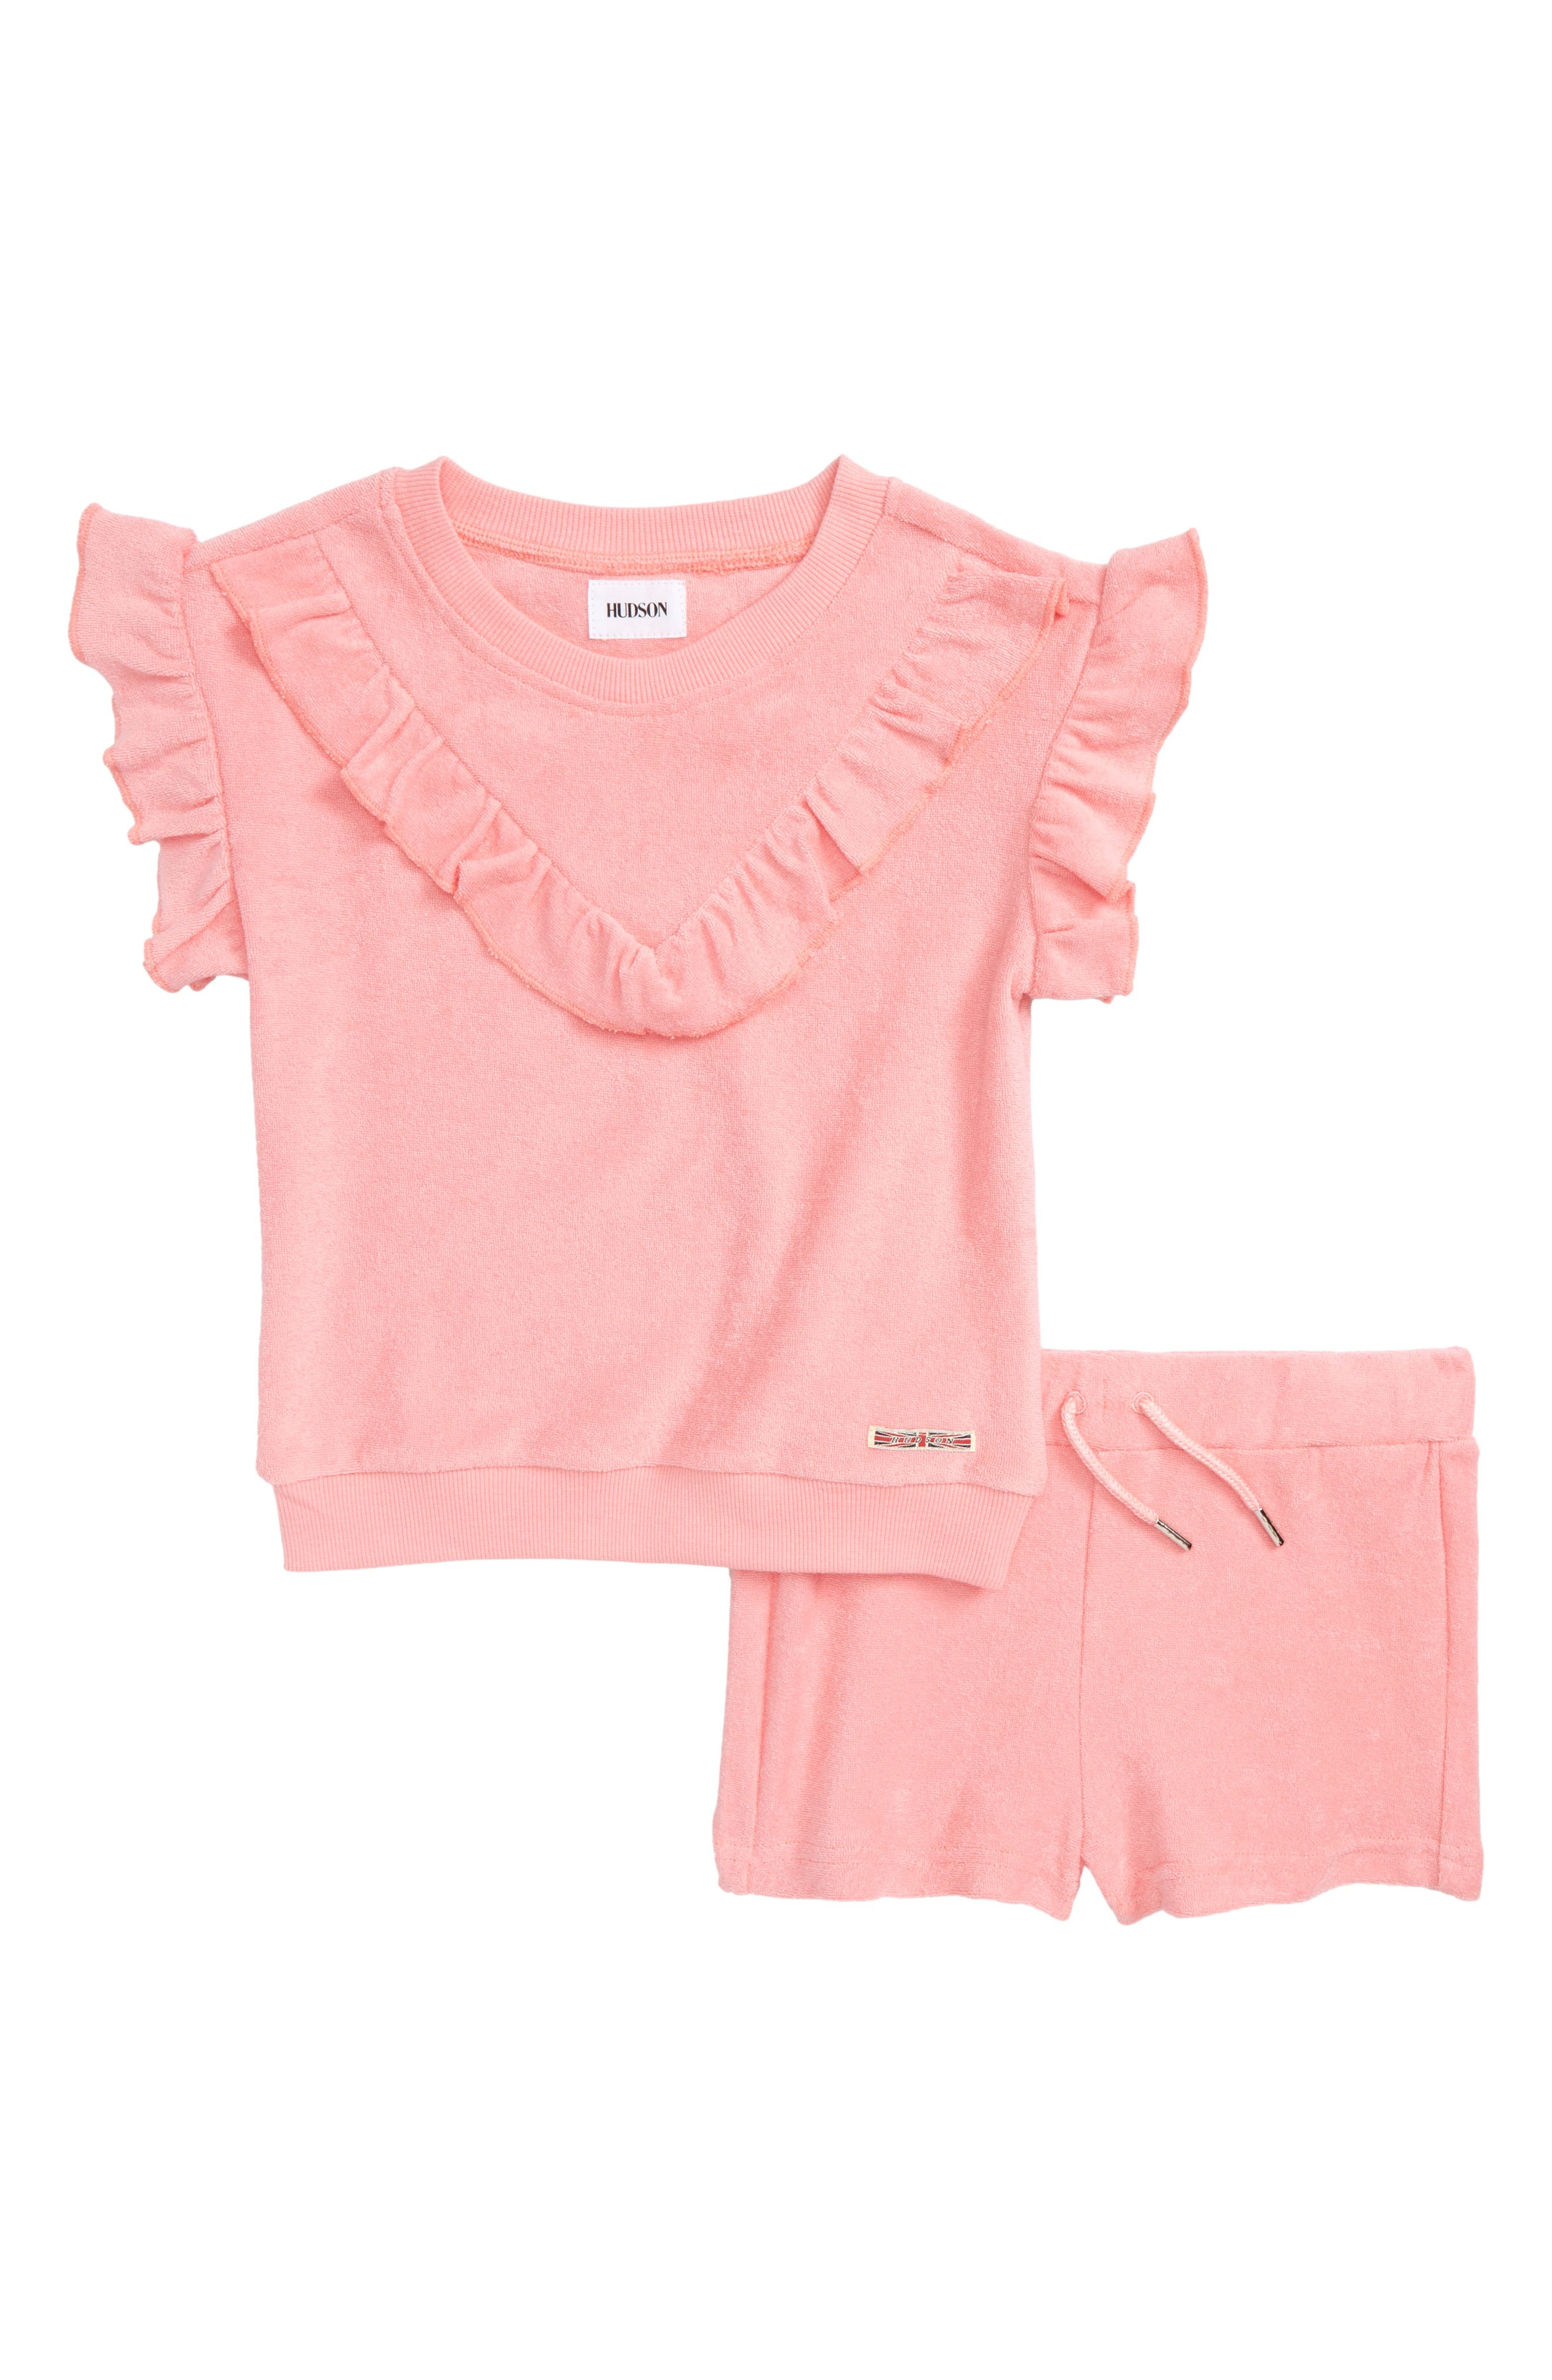 French Terry Ruffle Top & Shorts Set,                             Main thumbnail 1, color,                             Coral